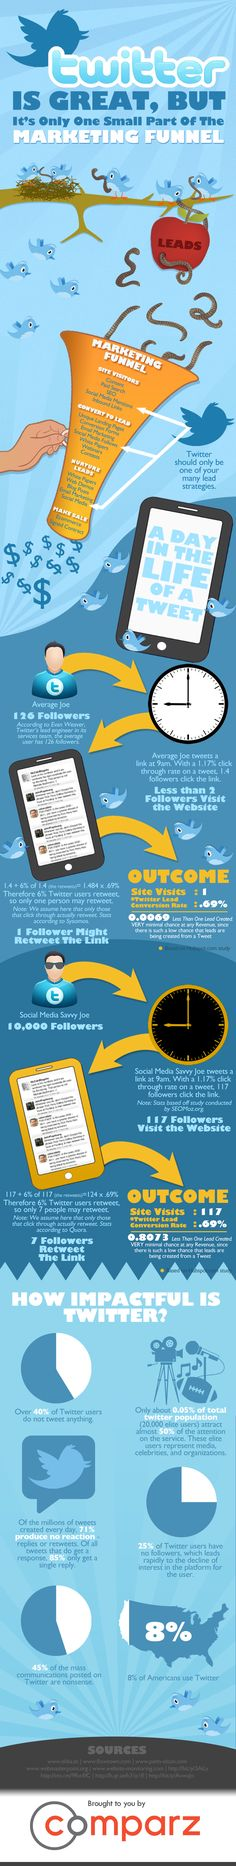 While Twitter is a brilliant tool, it should not be the entirety of your marketing strategy.  - #socialmedia #infographic